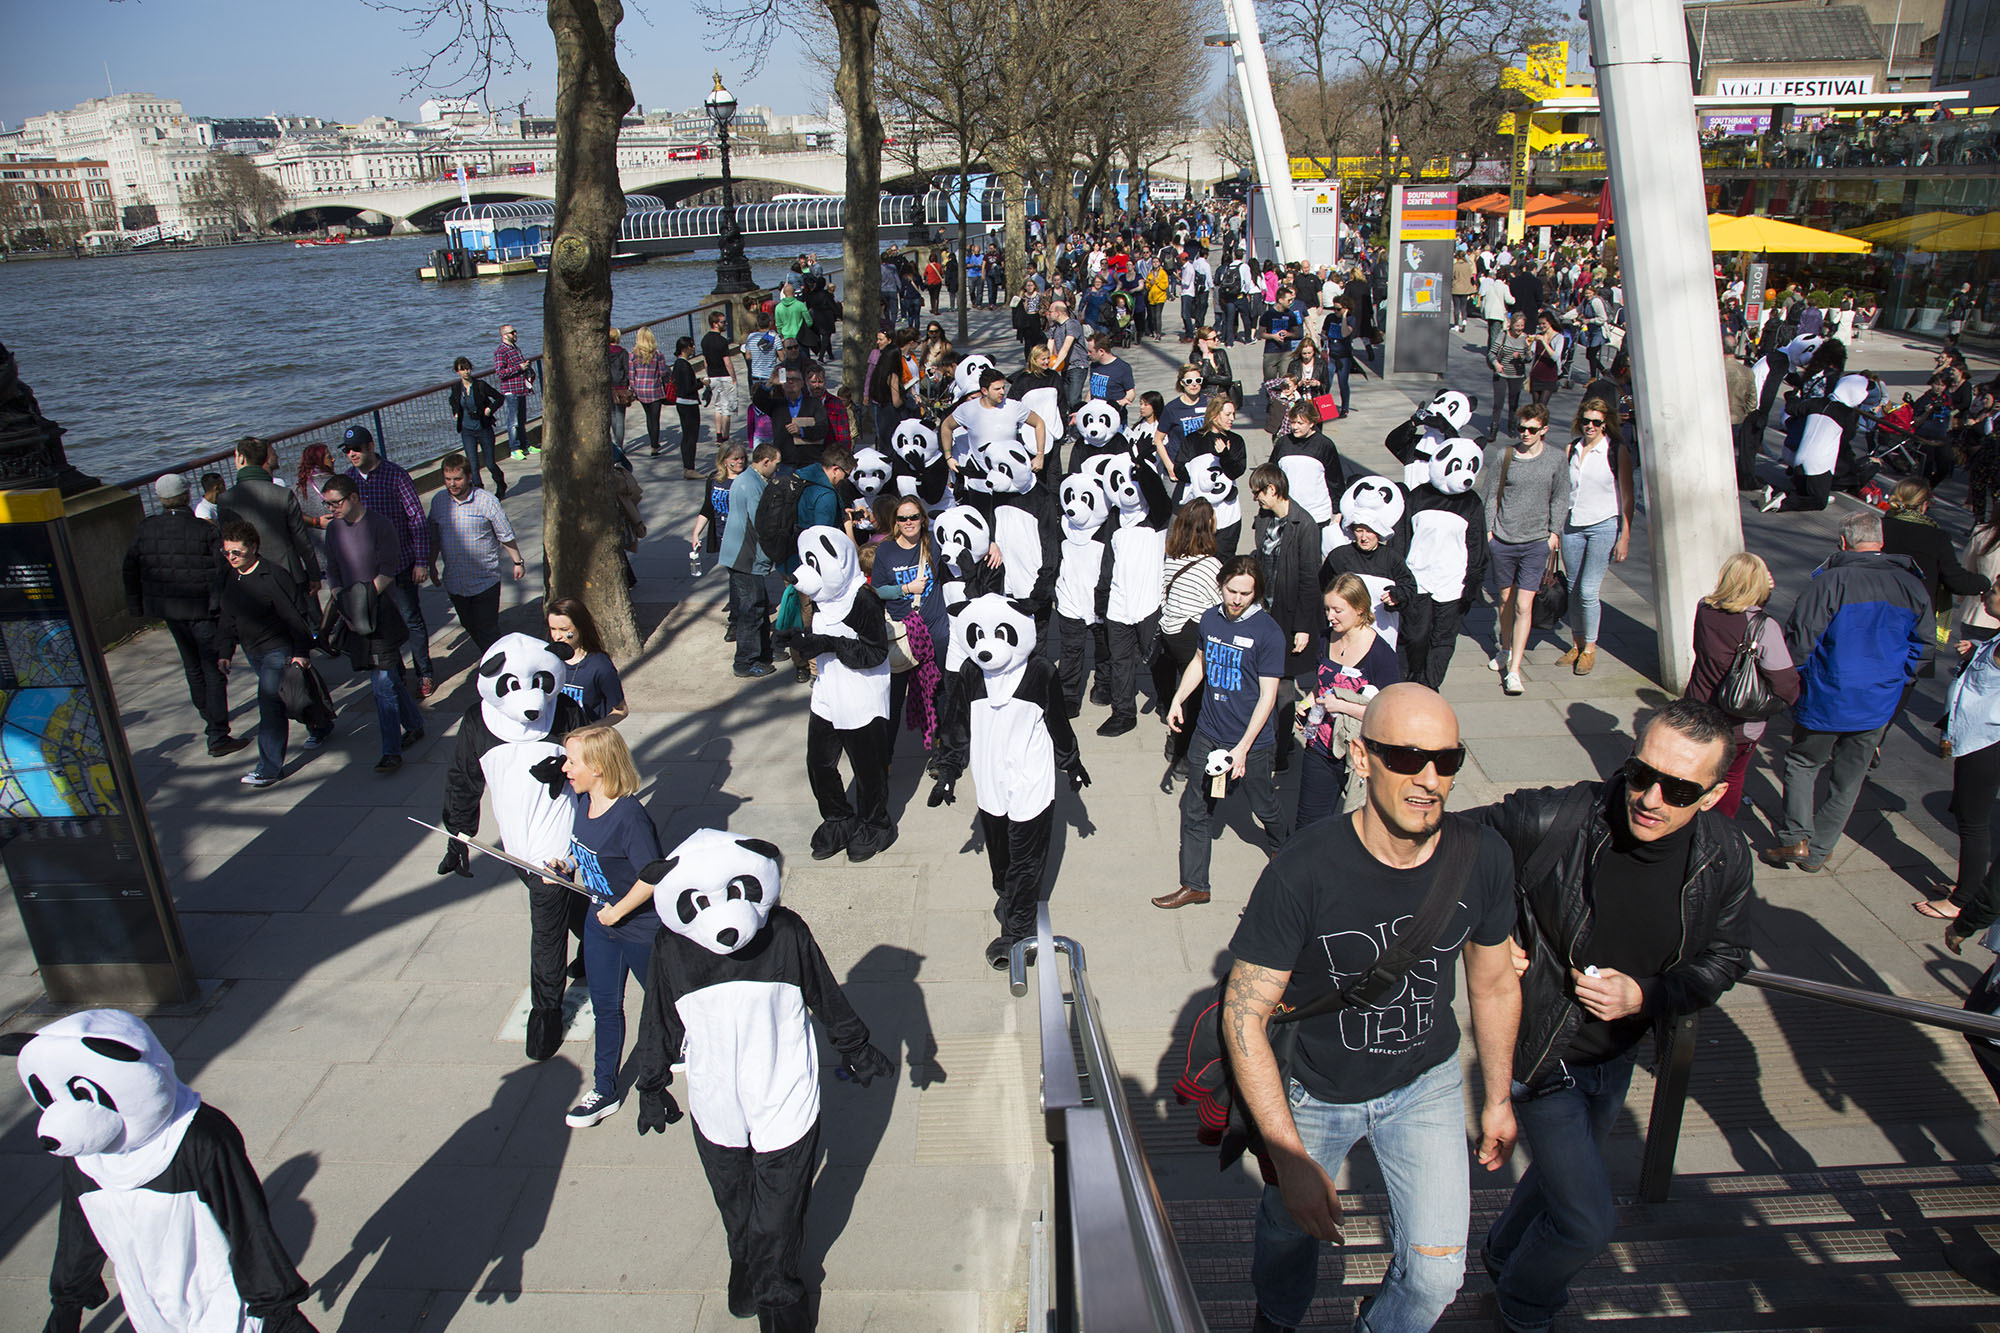 WWF pandas invade the Southbank Centre in London, UK to promote Earth Hour.